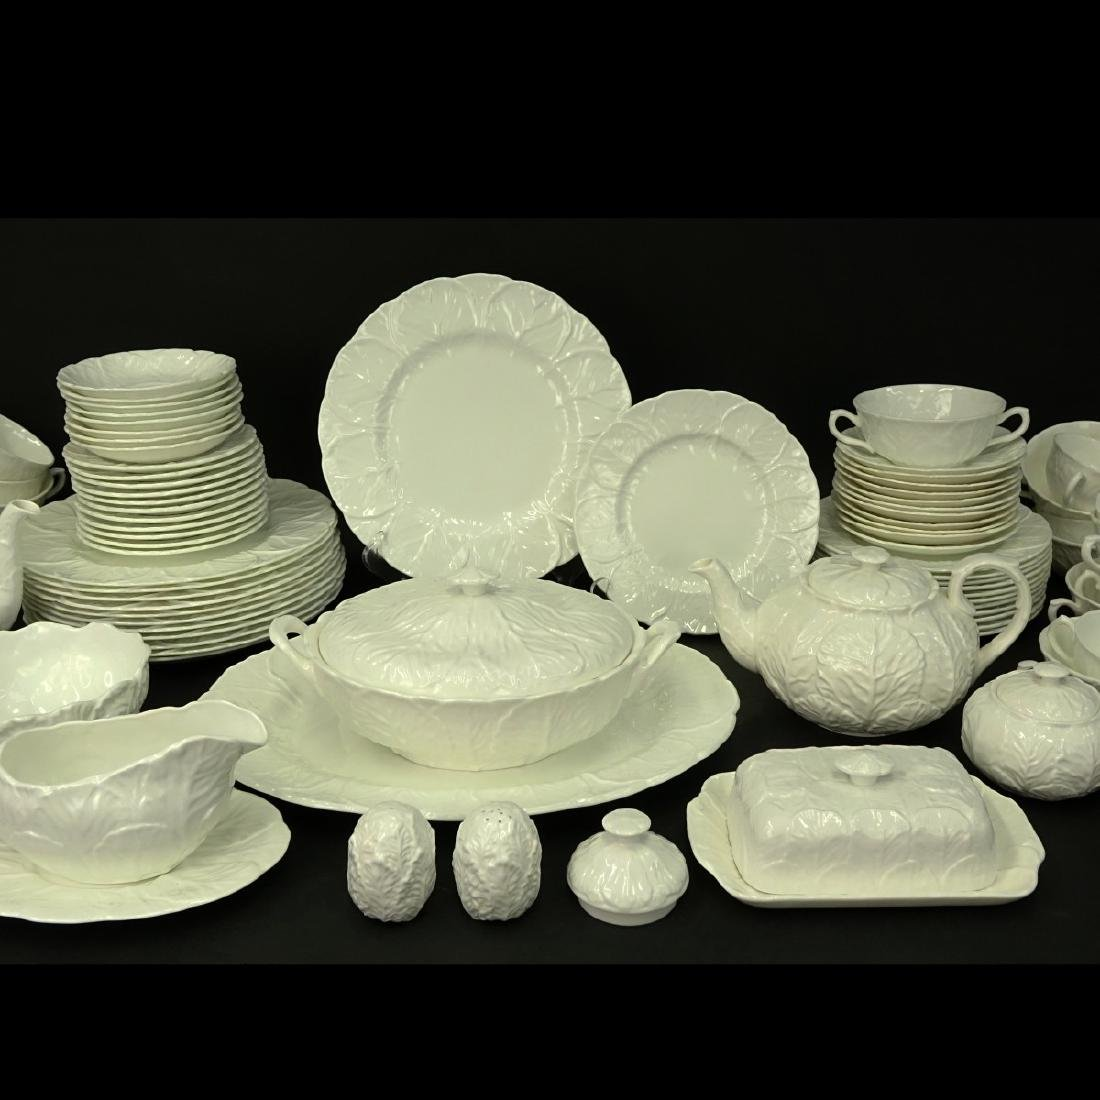 92 Piece Coalport White Countryware Dinner Service - 3